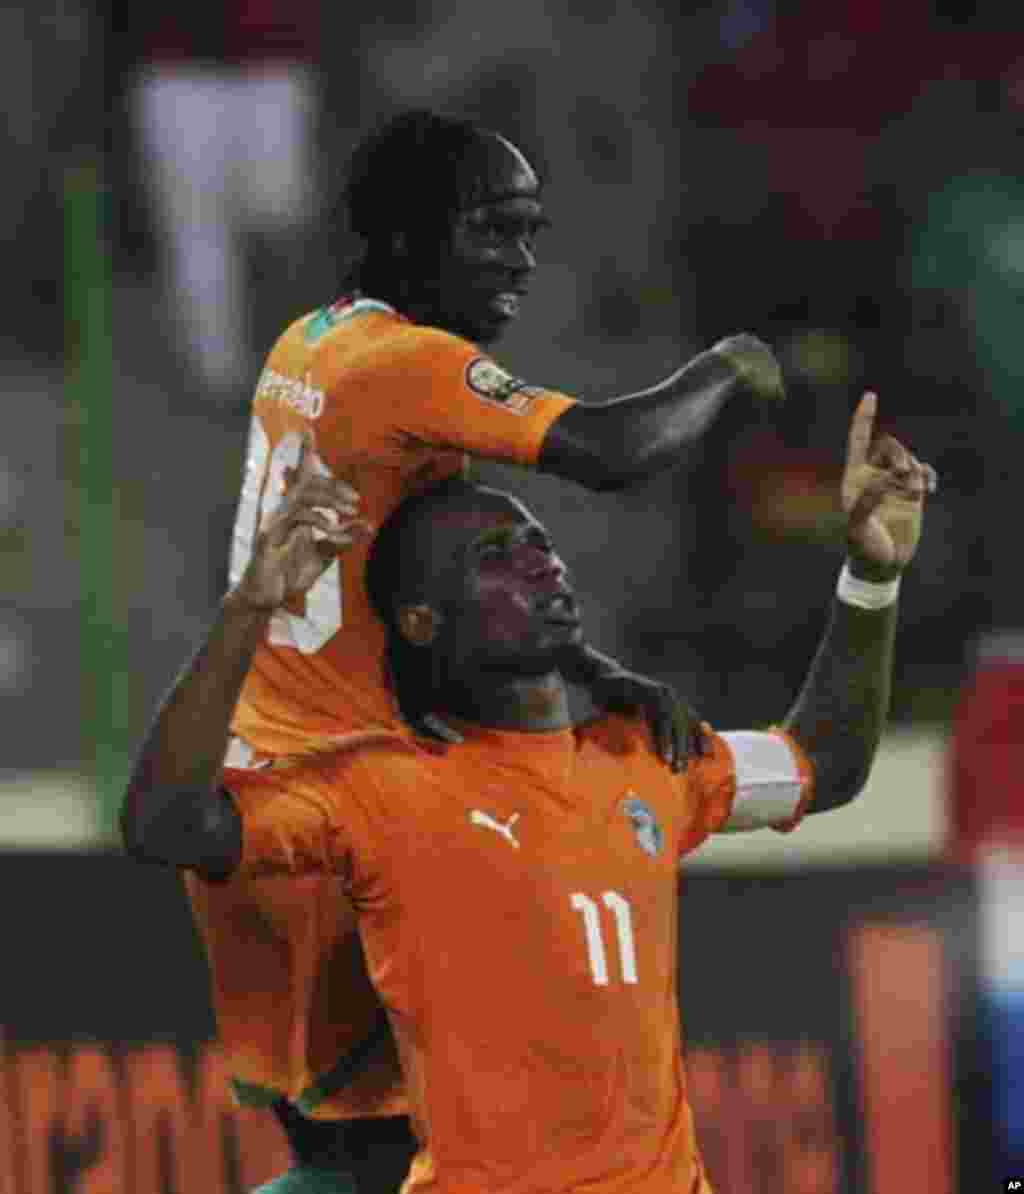 Didier Drogba (R) of Ivory Coast celebrates with teammate Yao Kouassi Gervinho after scoring against Equatorial Guinea during their quarter-final match at the African Nations Cup soccer tournament in Malabo February 4, 2012.